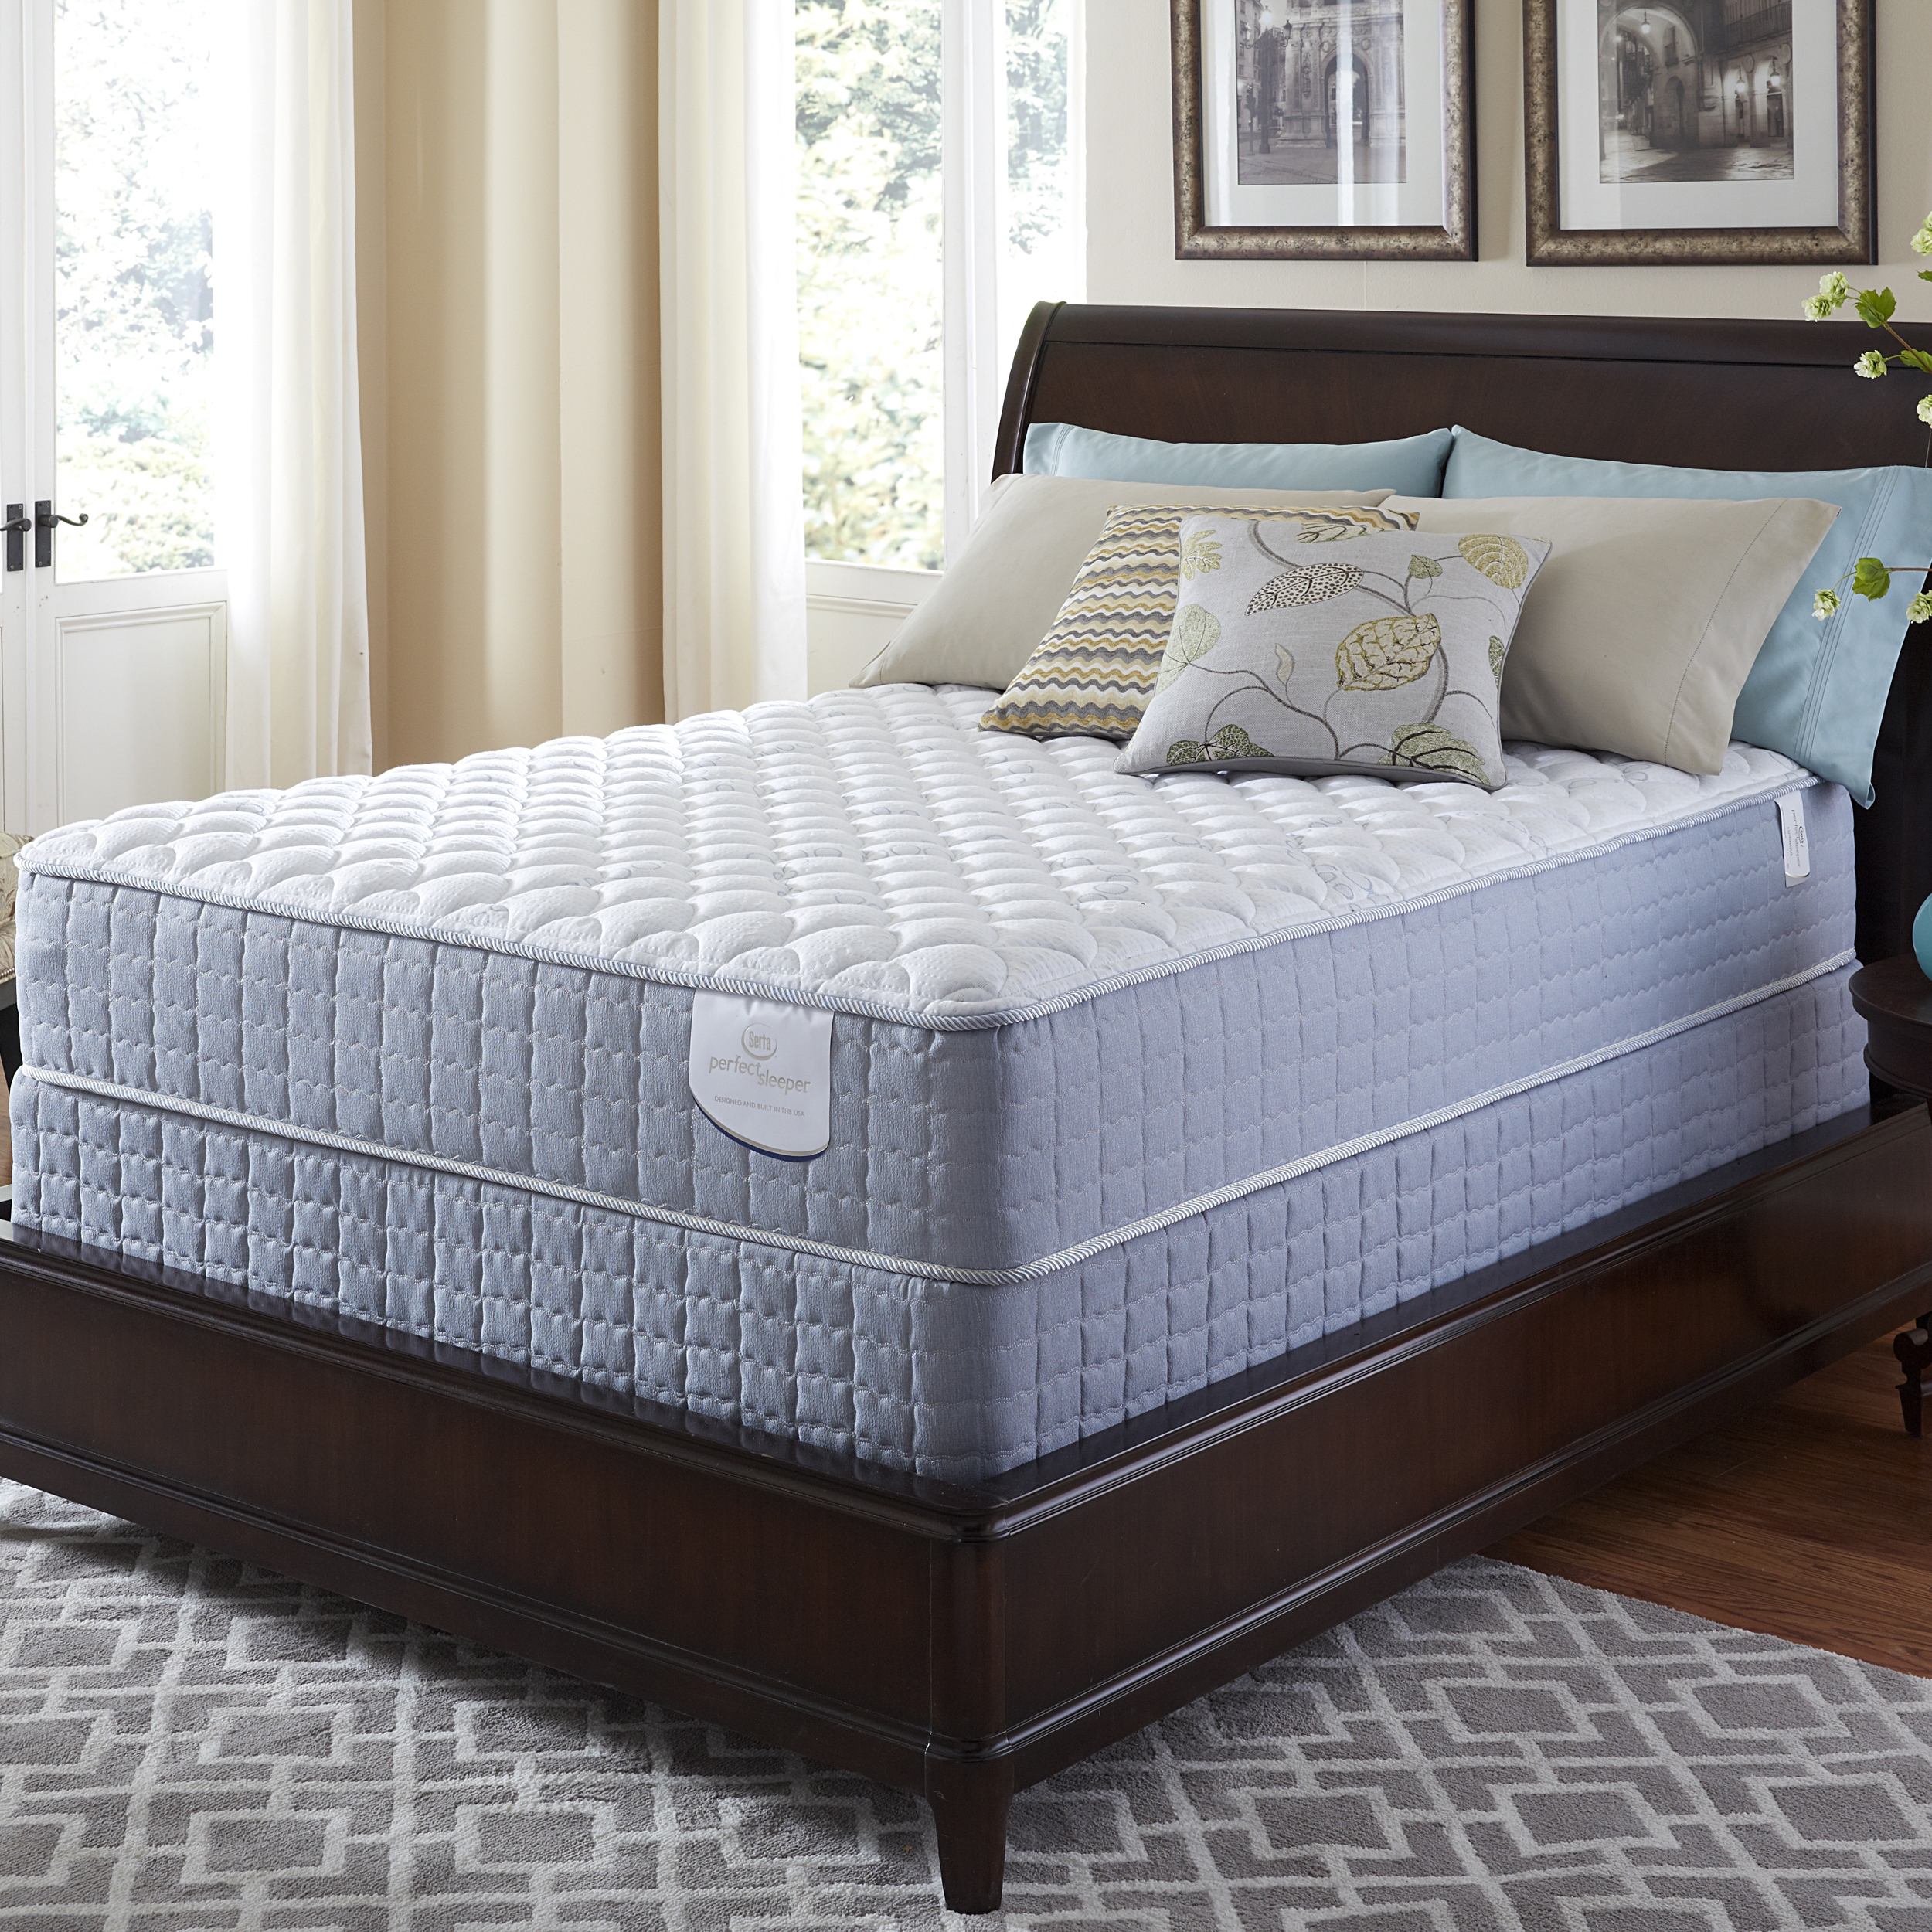 serta perfect sleeper luminous cushion firm king size mattress and pillows with brown headboard before the